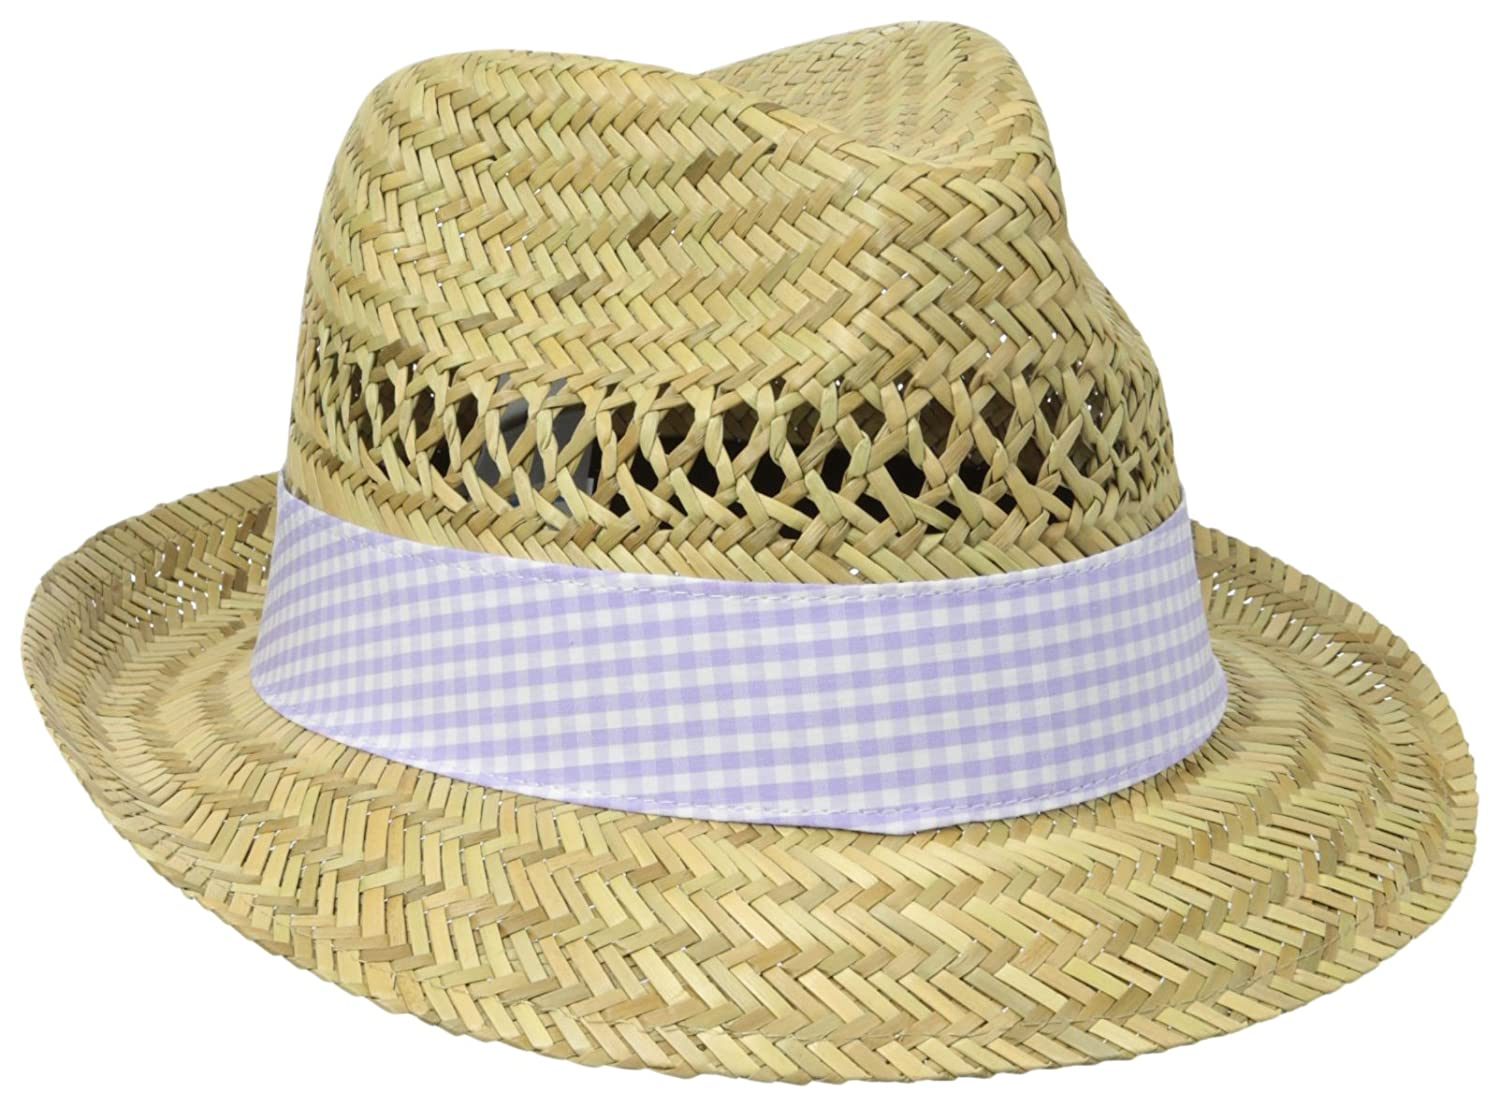 f8a3992f82c08a Columbia Sun Drifter Women's Straw Hat, Natural/Geyser Plaid One Size at  Amazon Women's Clothing store: